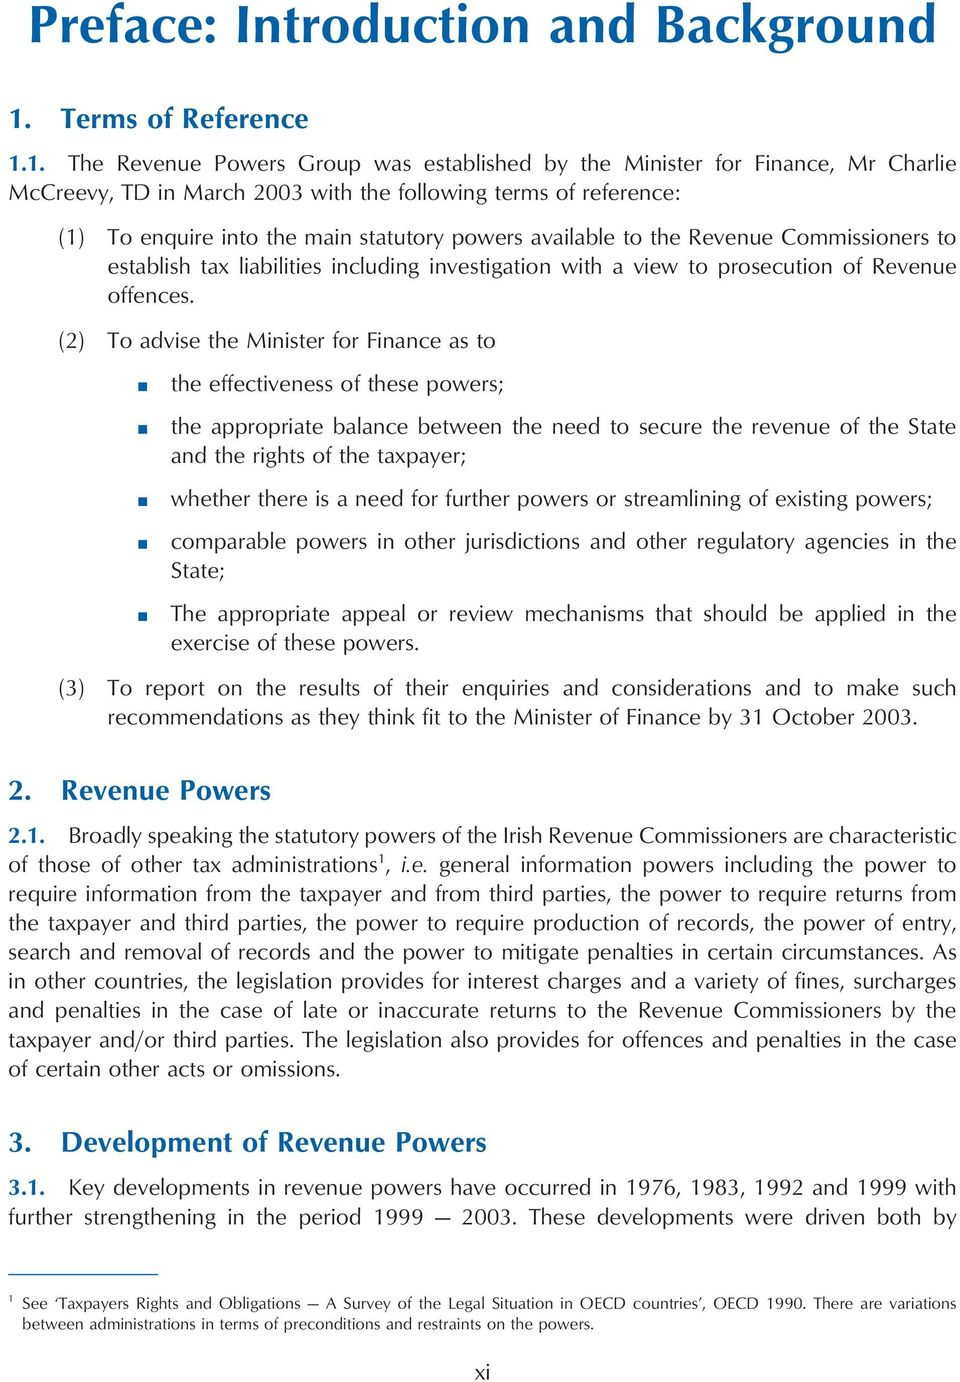 1. The Revenue Powers Group was established by the Minister for Finance, Mr Charlie McCreevy, TD in March 2003 with the following terms of reference: (1) To enquire into the main statutory powers